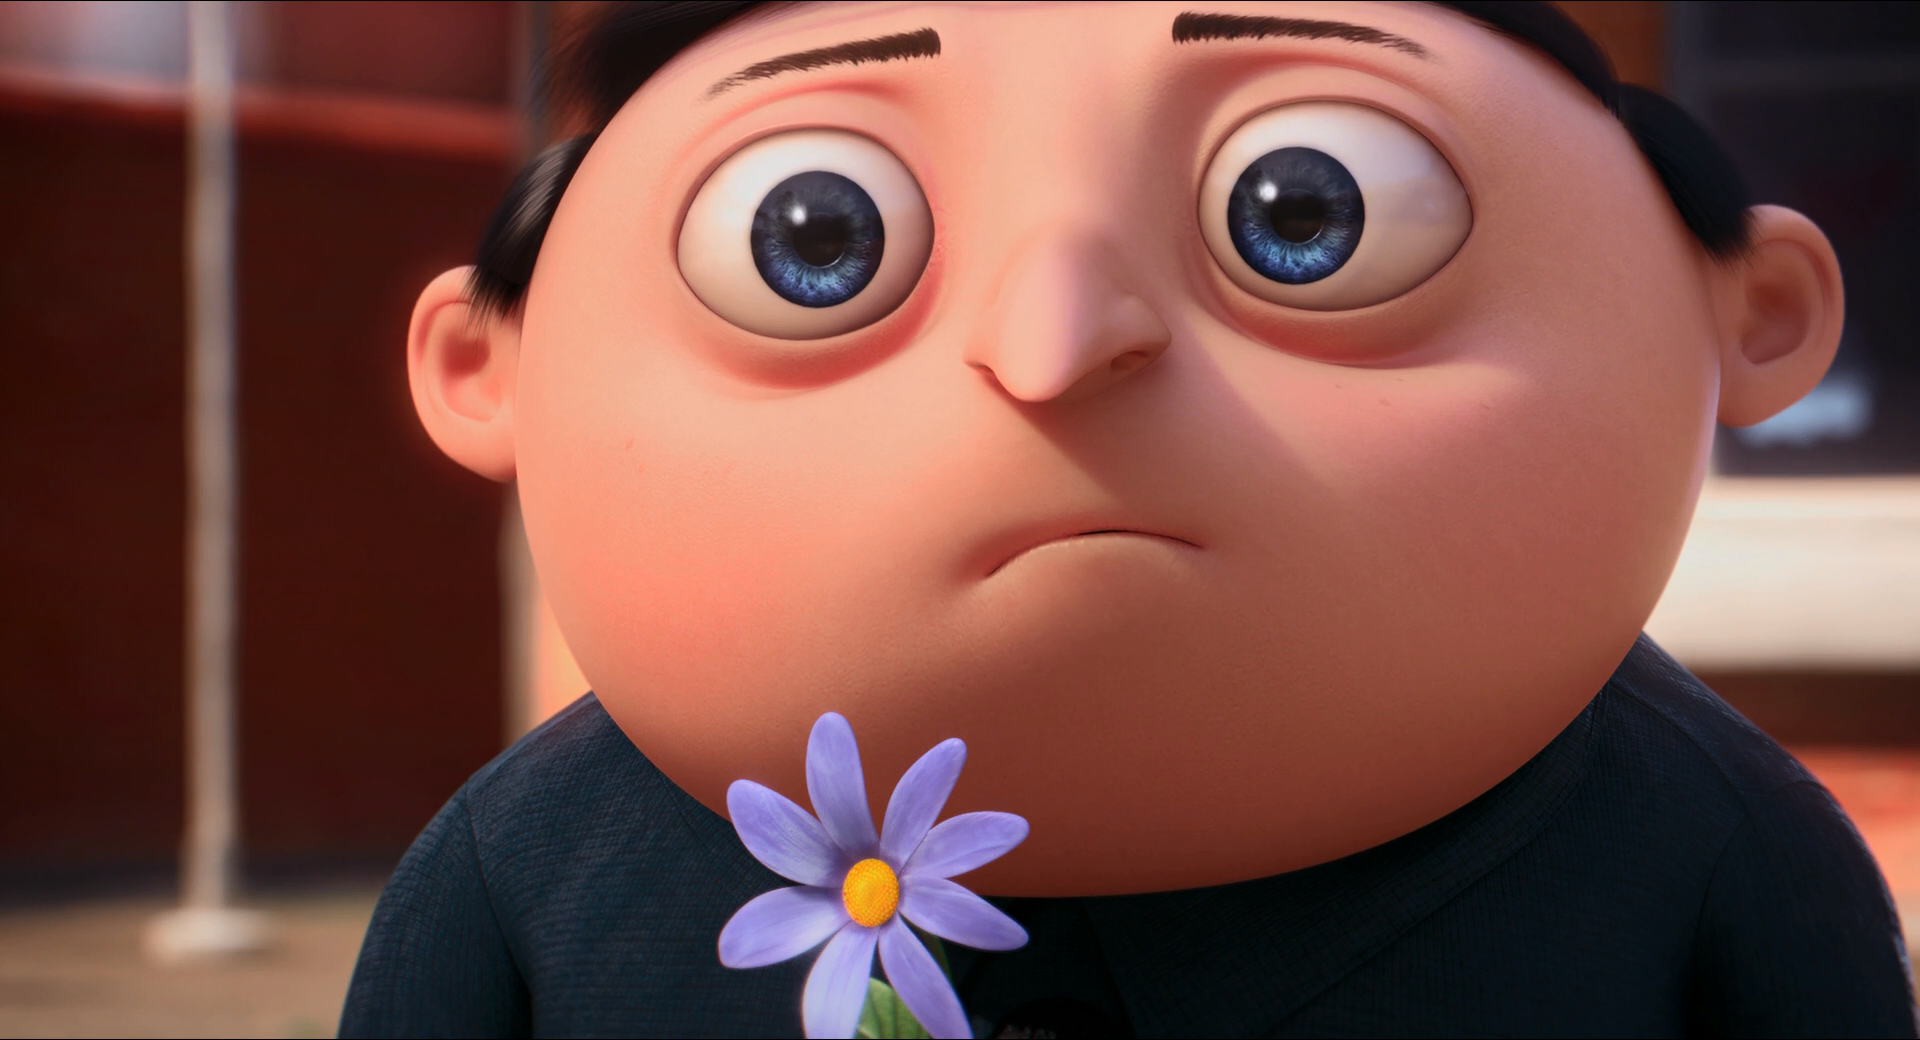 Despicable Me 2 Young Gru Mglr Mac Guff Ligne Render Despicable Me Despicable Me 2 Kid Movies